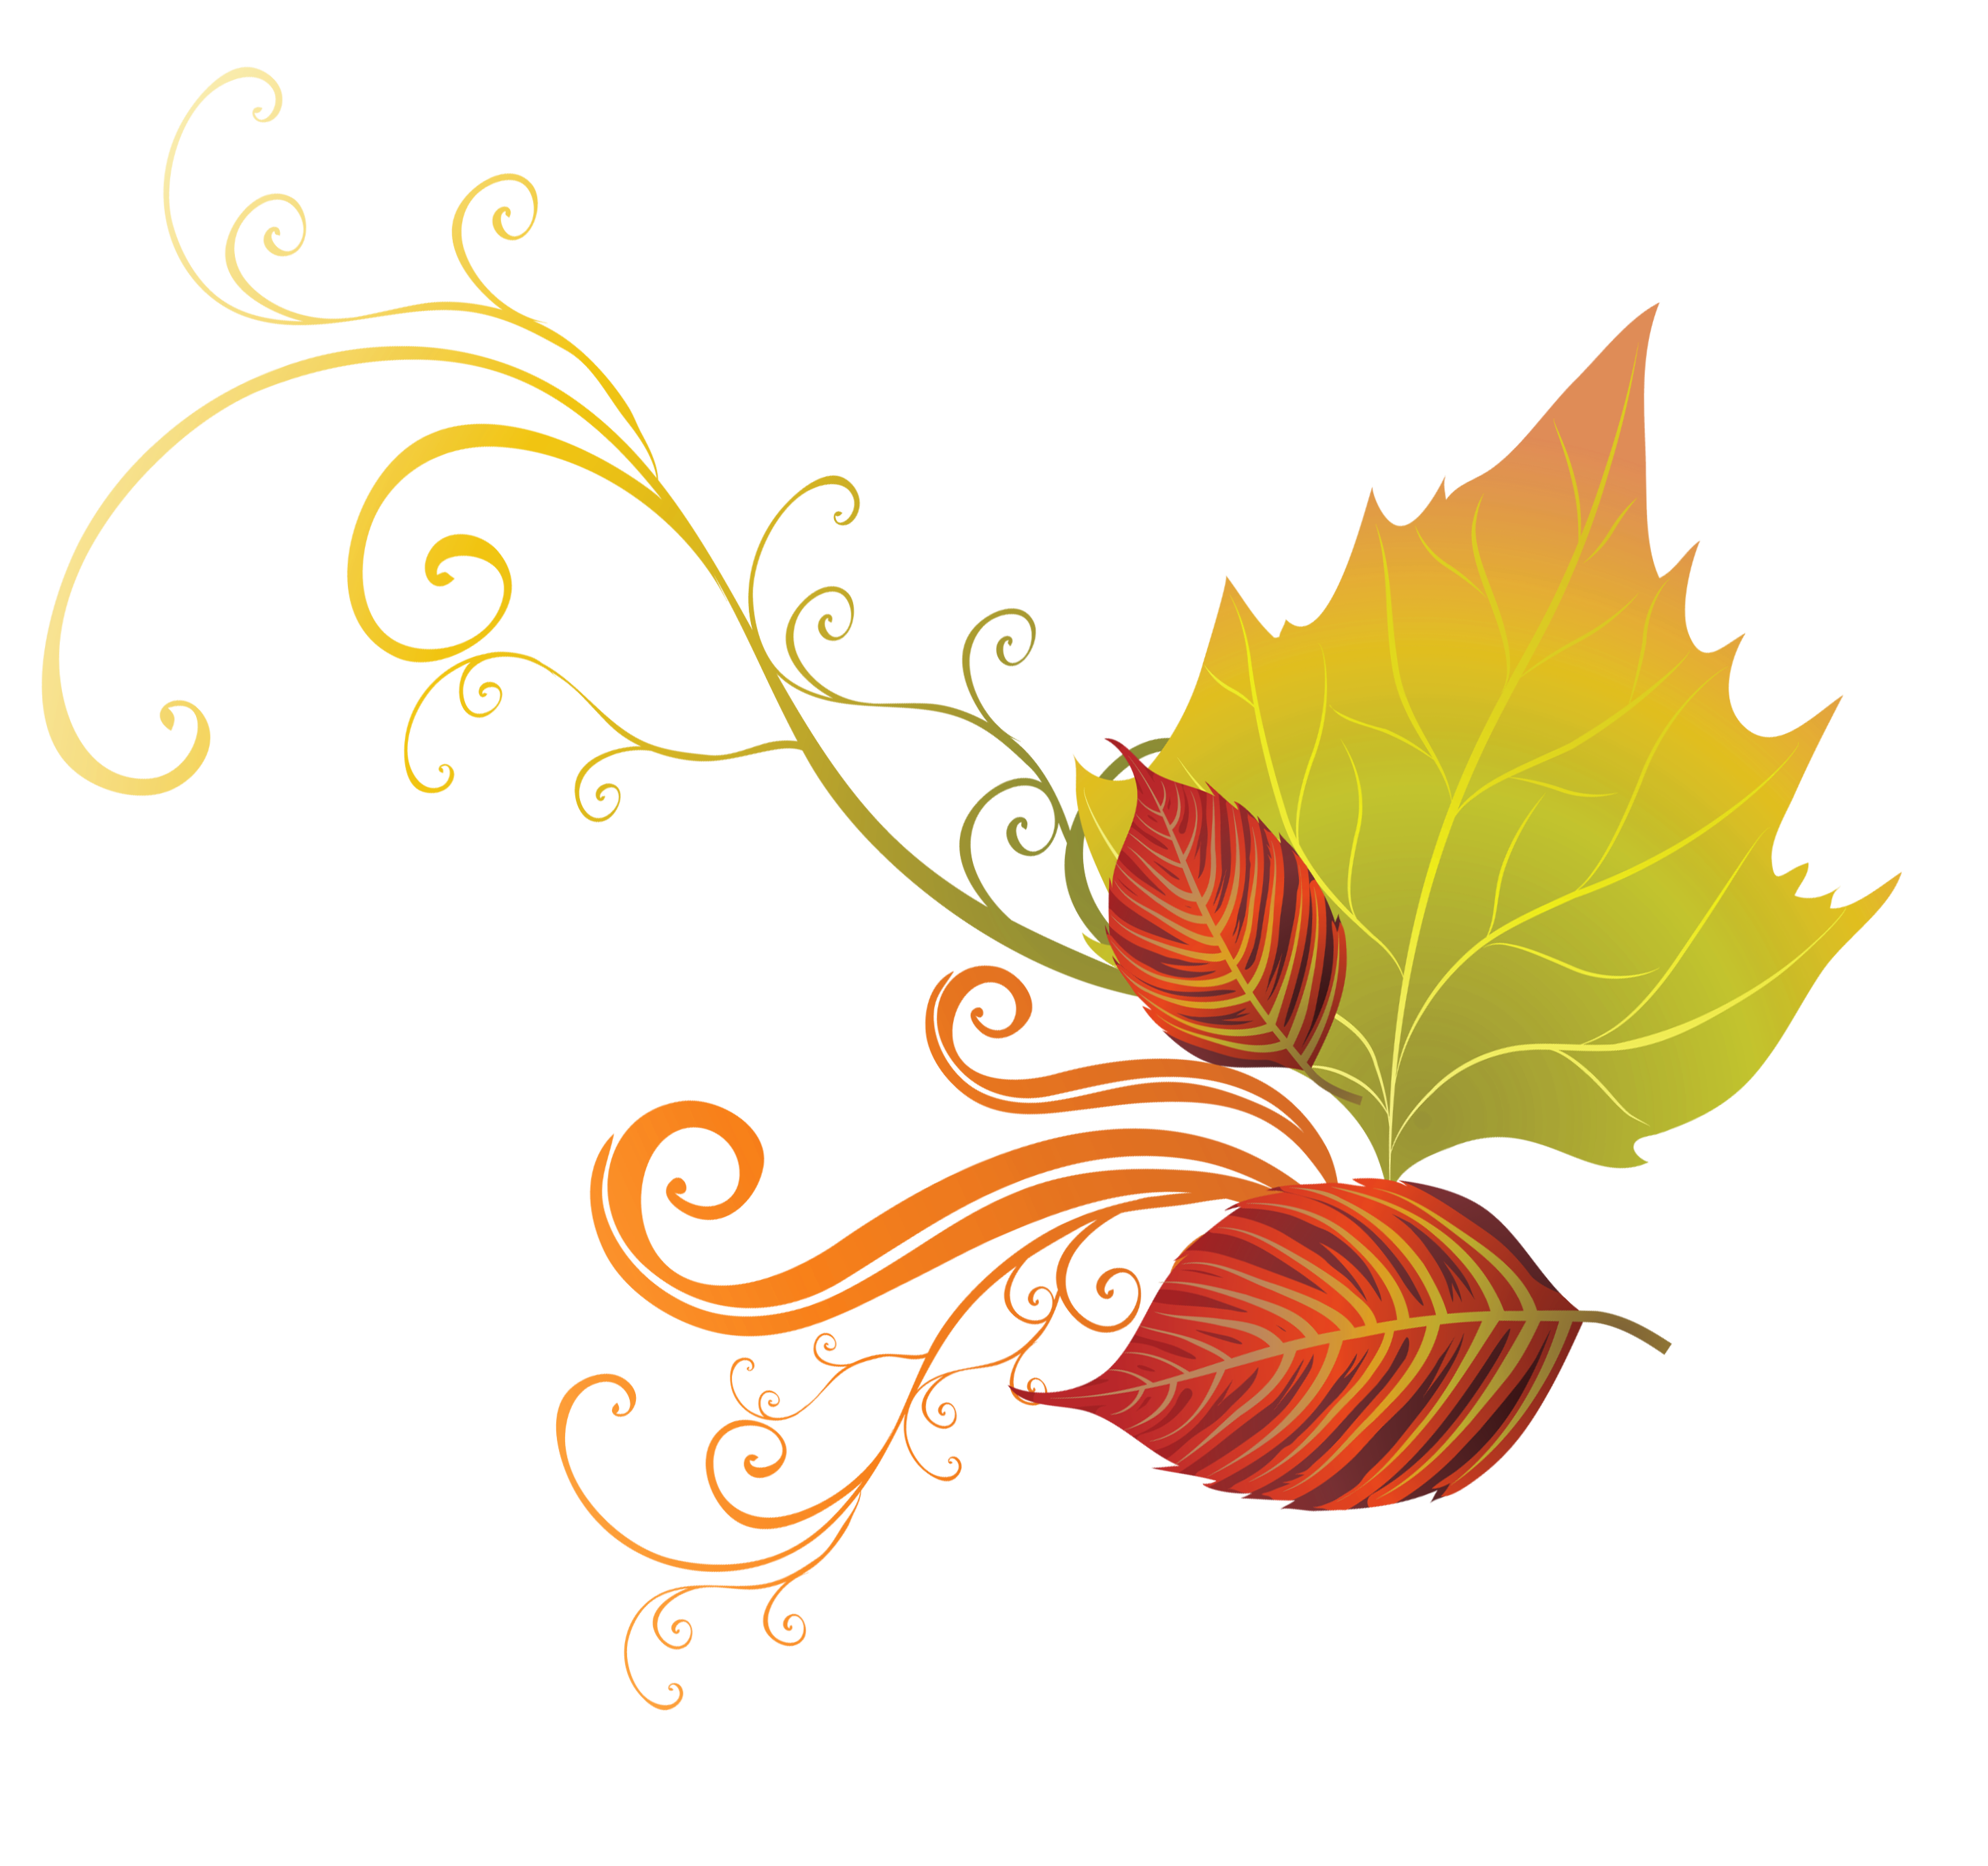 Fall Leaves Decor Png Clipart Png Png Image 2920 2741 Pixels Scaled 22 Fall Leaf Decor Hibiscus Clip Art Leaf Clipart